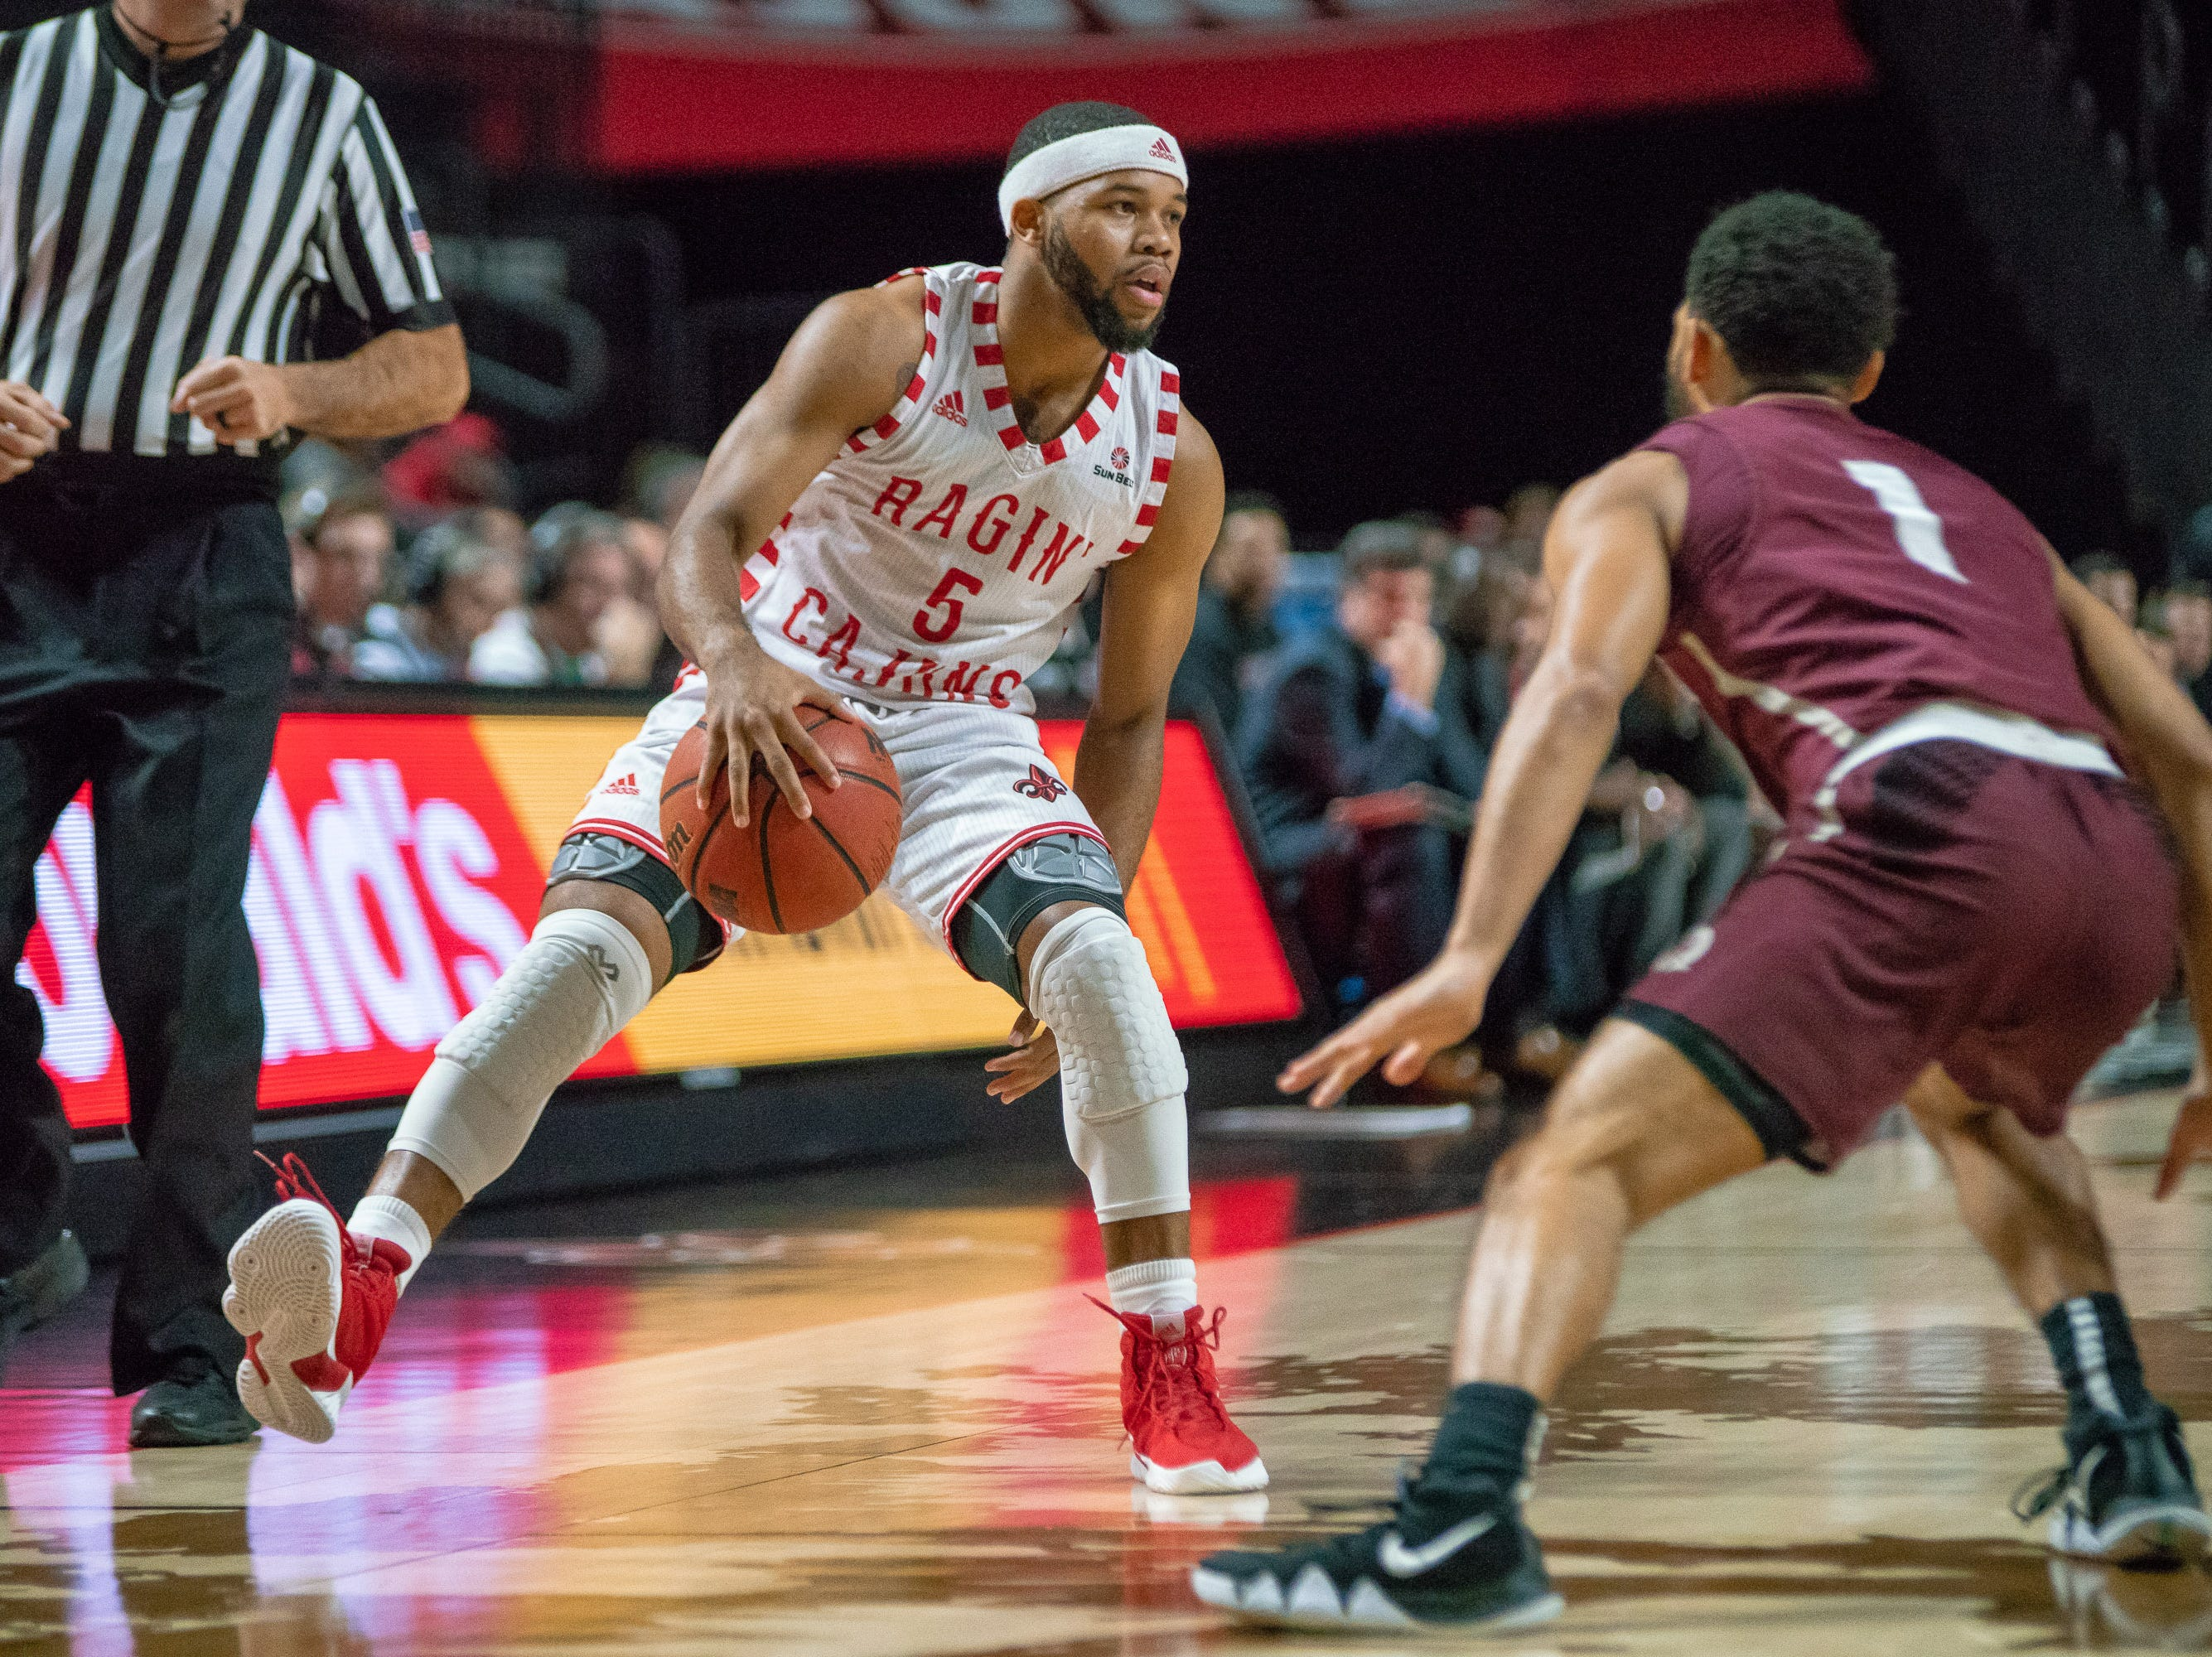 UL's Trajan Wesley handles the ball during the play as the Ragin' Cajuns take on the Little Rock Trojans at the Cajundome on January 5, 2019.